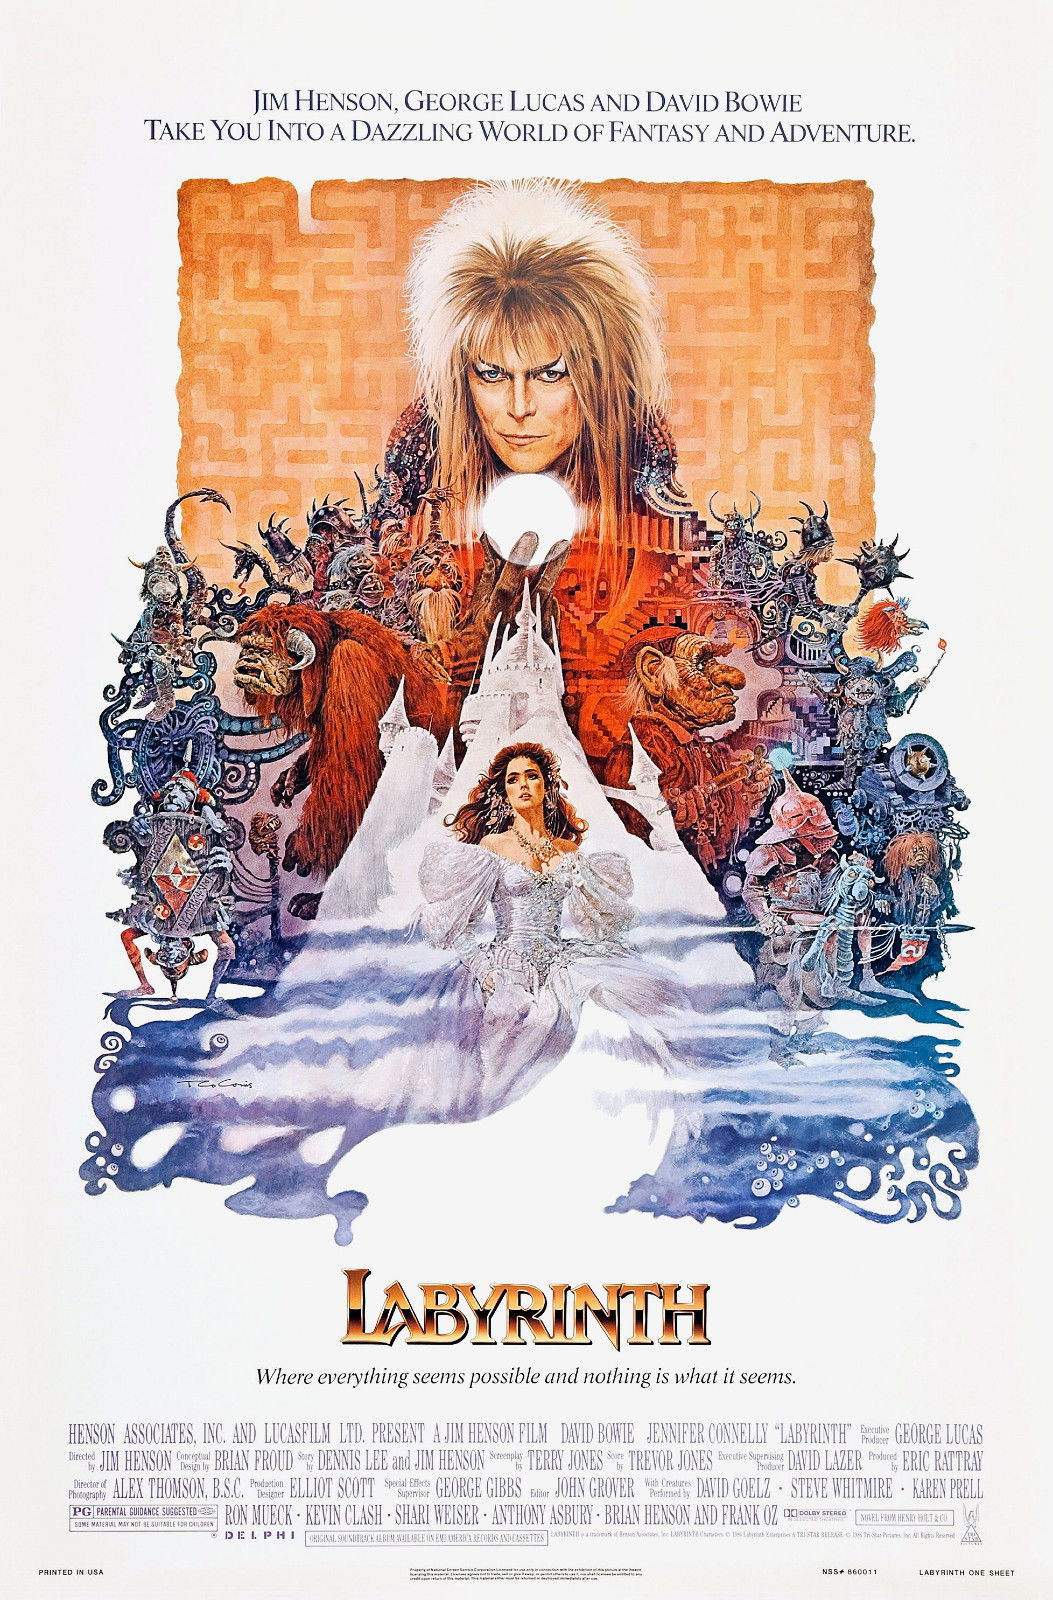 72230-Labyrinth-1986-Movie-David-Bowie-Jim-Henson-Wall-Print-Poster-Affiche